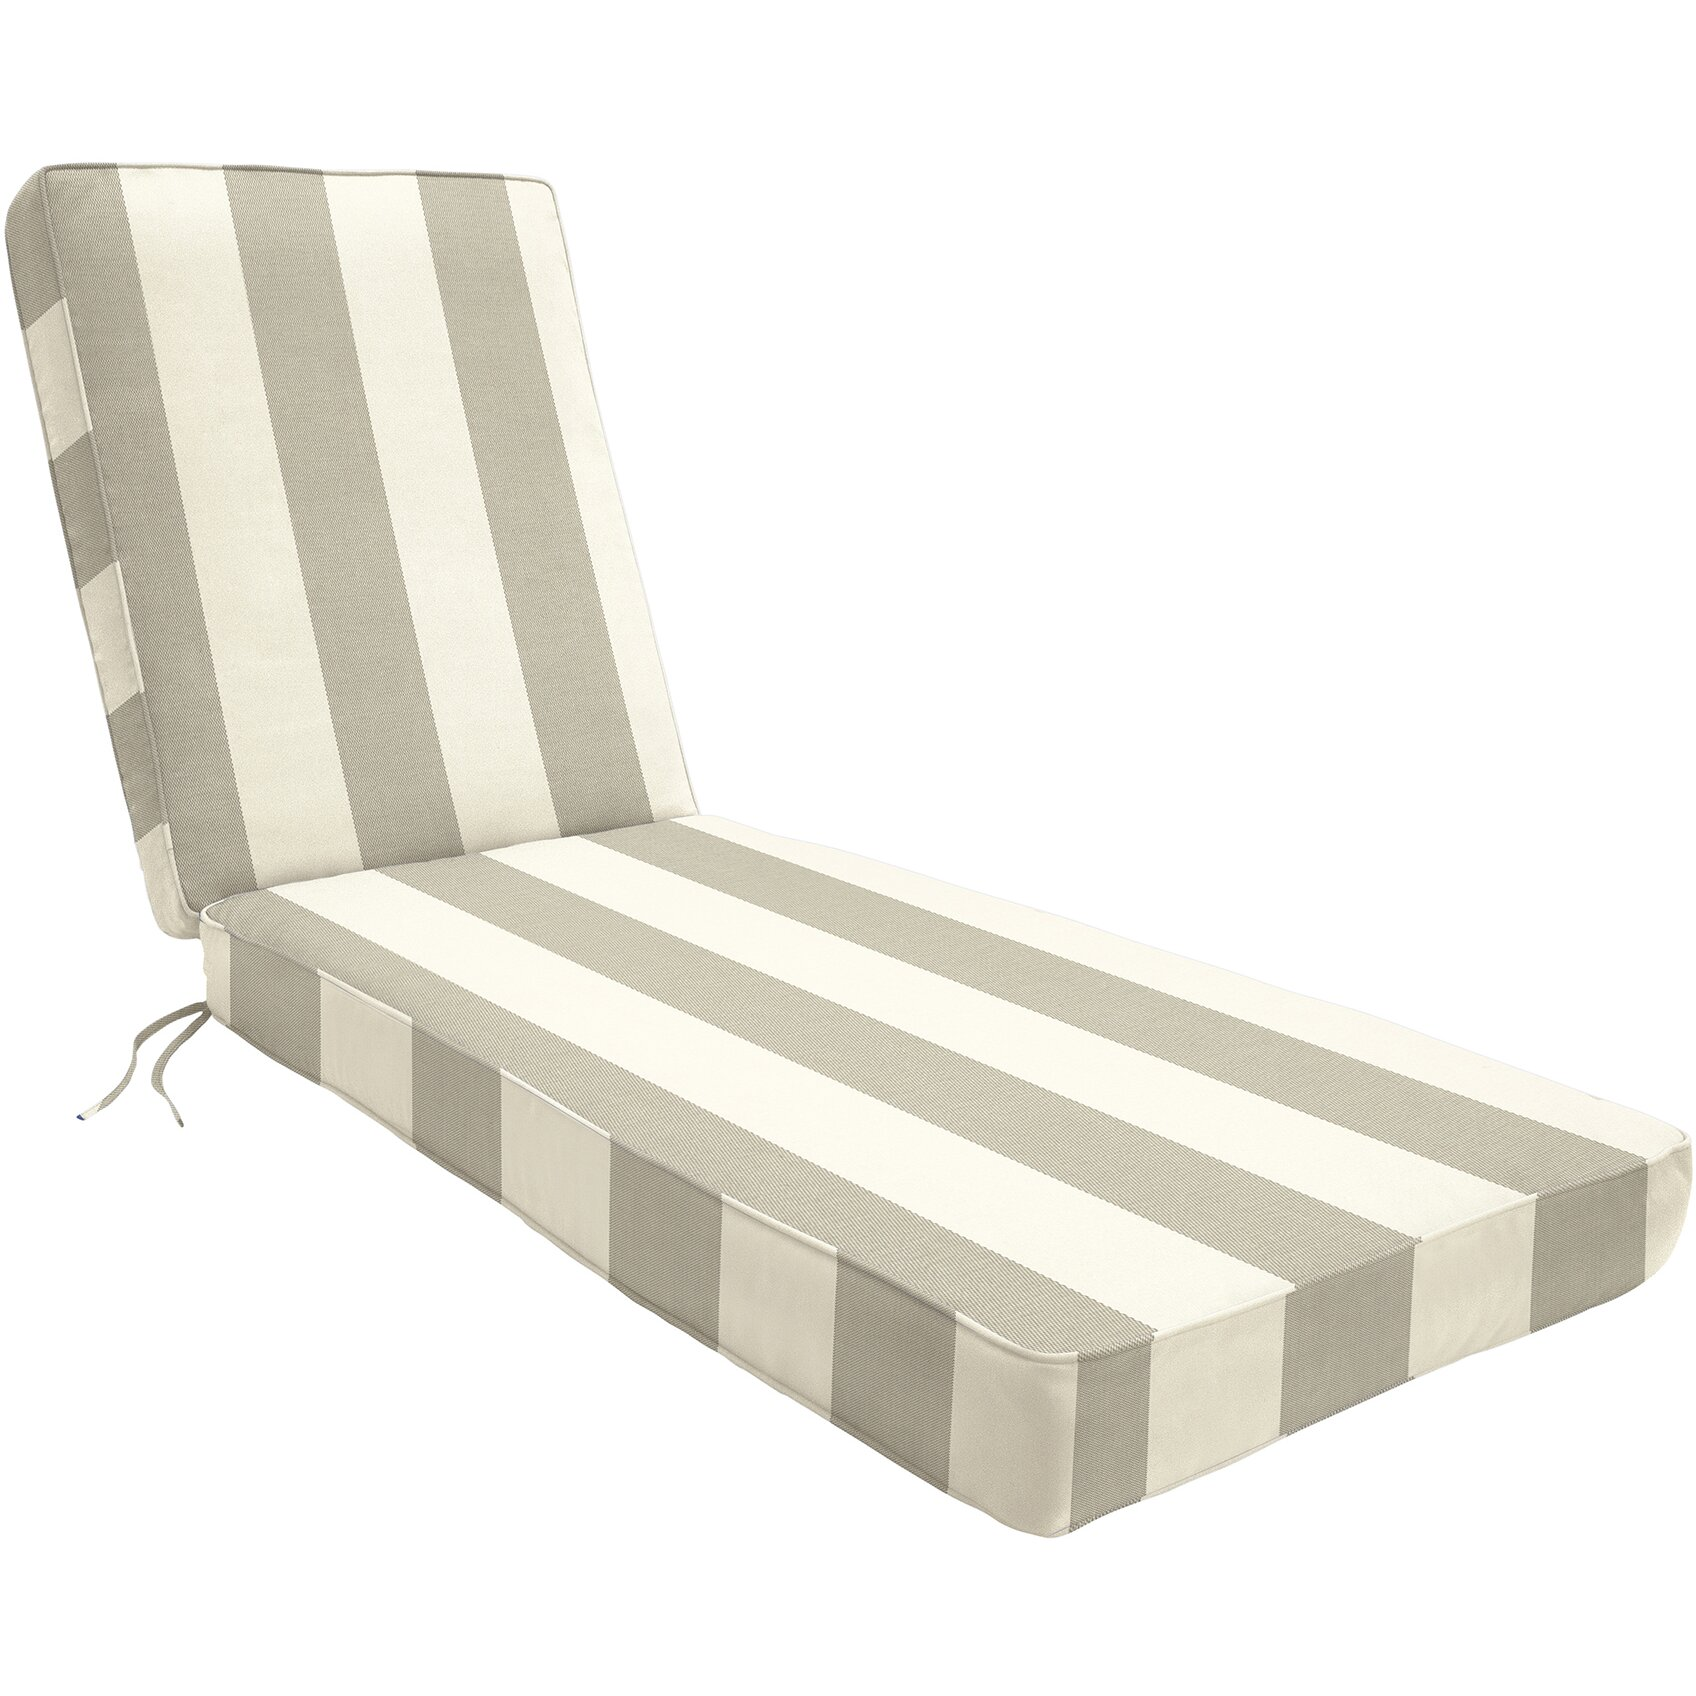 Wayfair custom outdoor cushions outdoor sunbrella chaise for Chaise lounge cushion outdoor